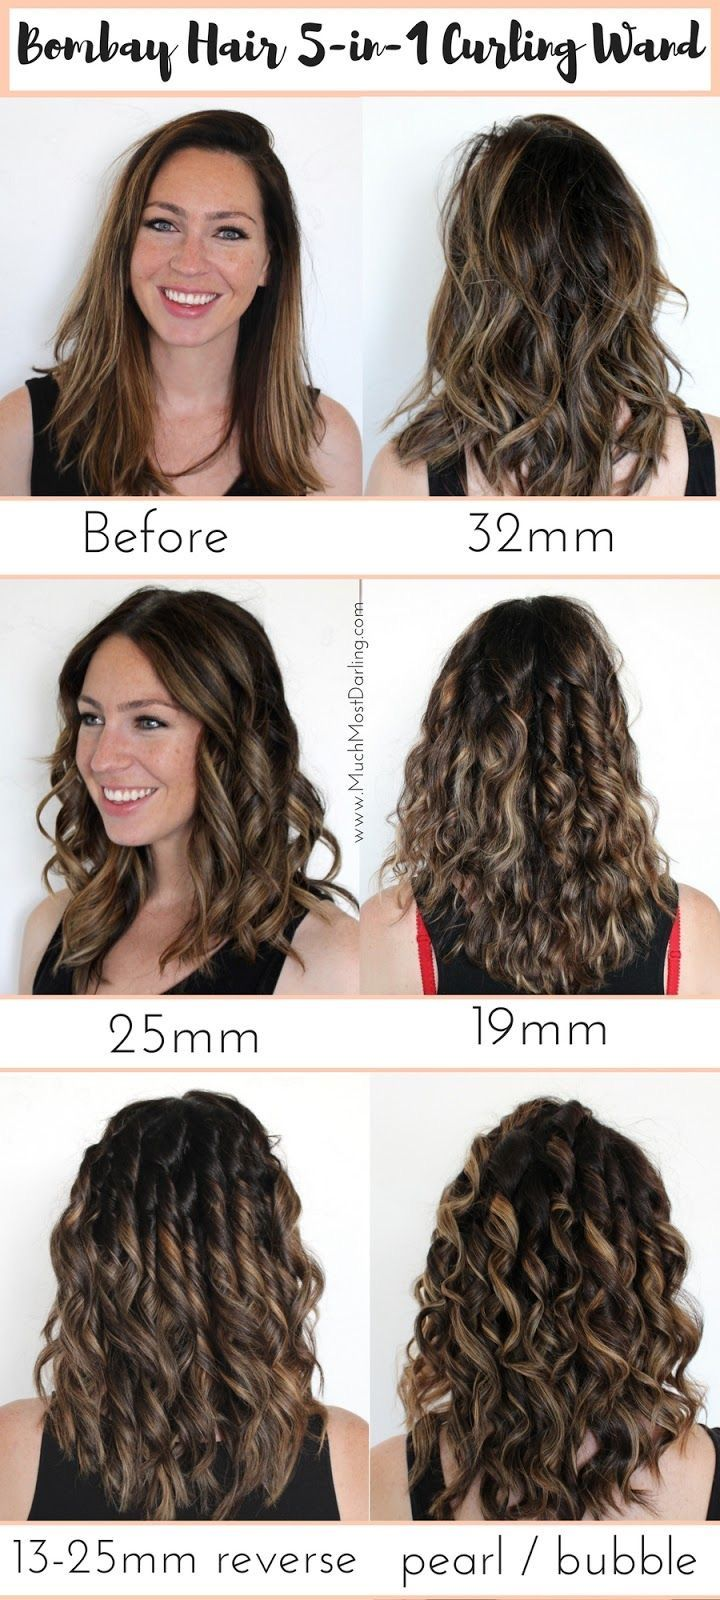 Pin By Jessica Warren On Dyi Makeovers In 2020 Curling Wand Short Hair Wand Hairstyles Curling Hair With Wand